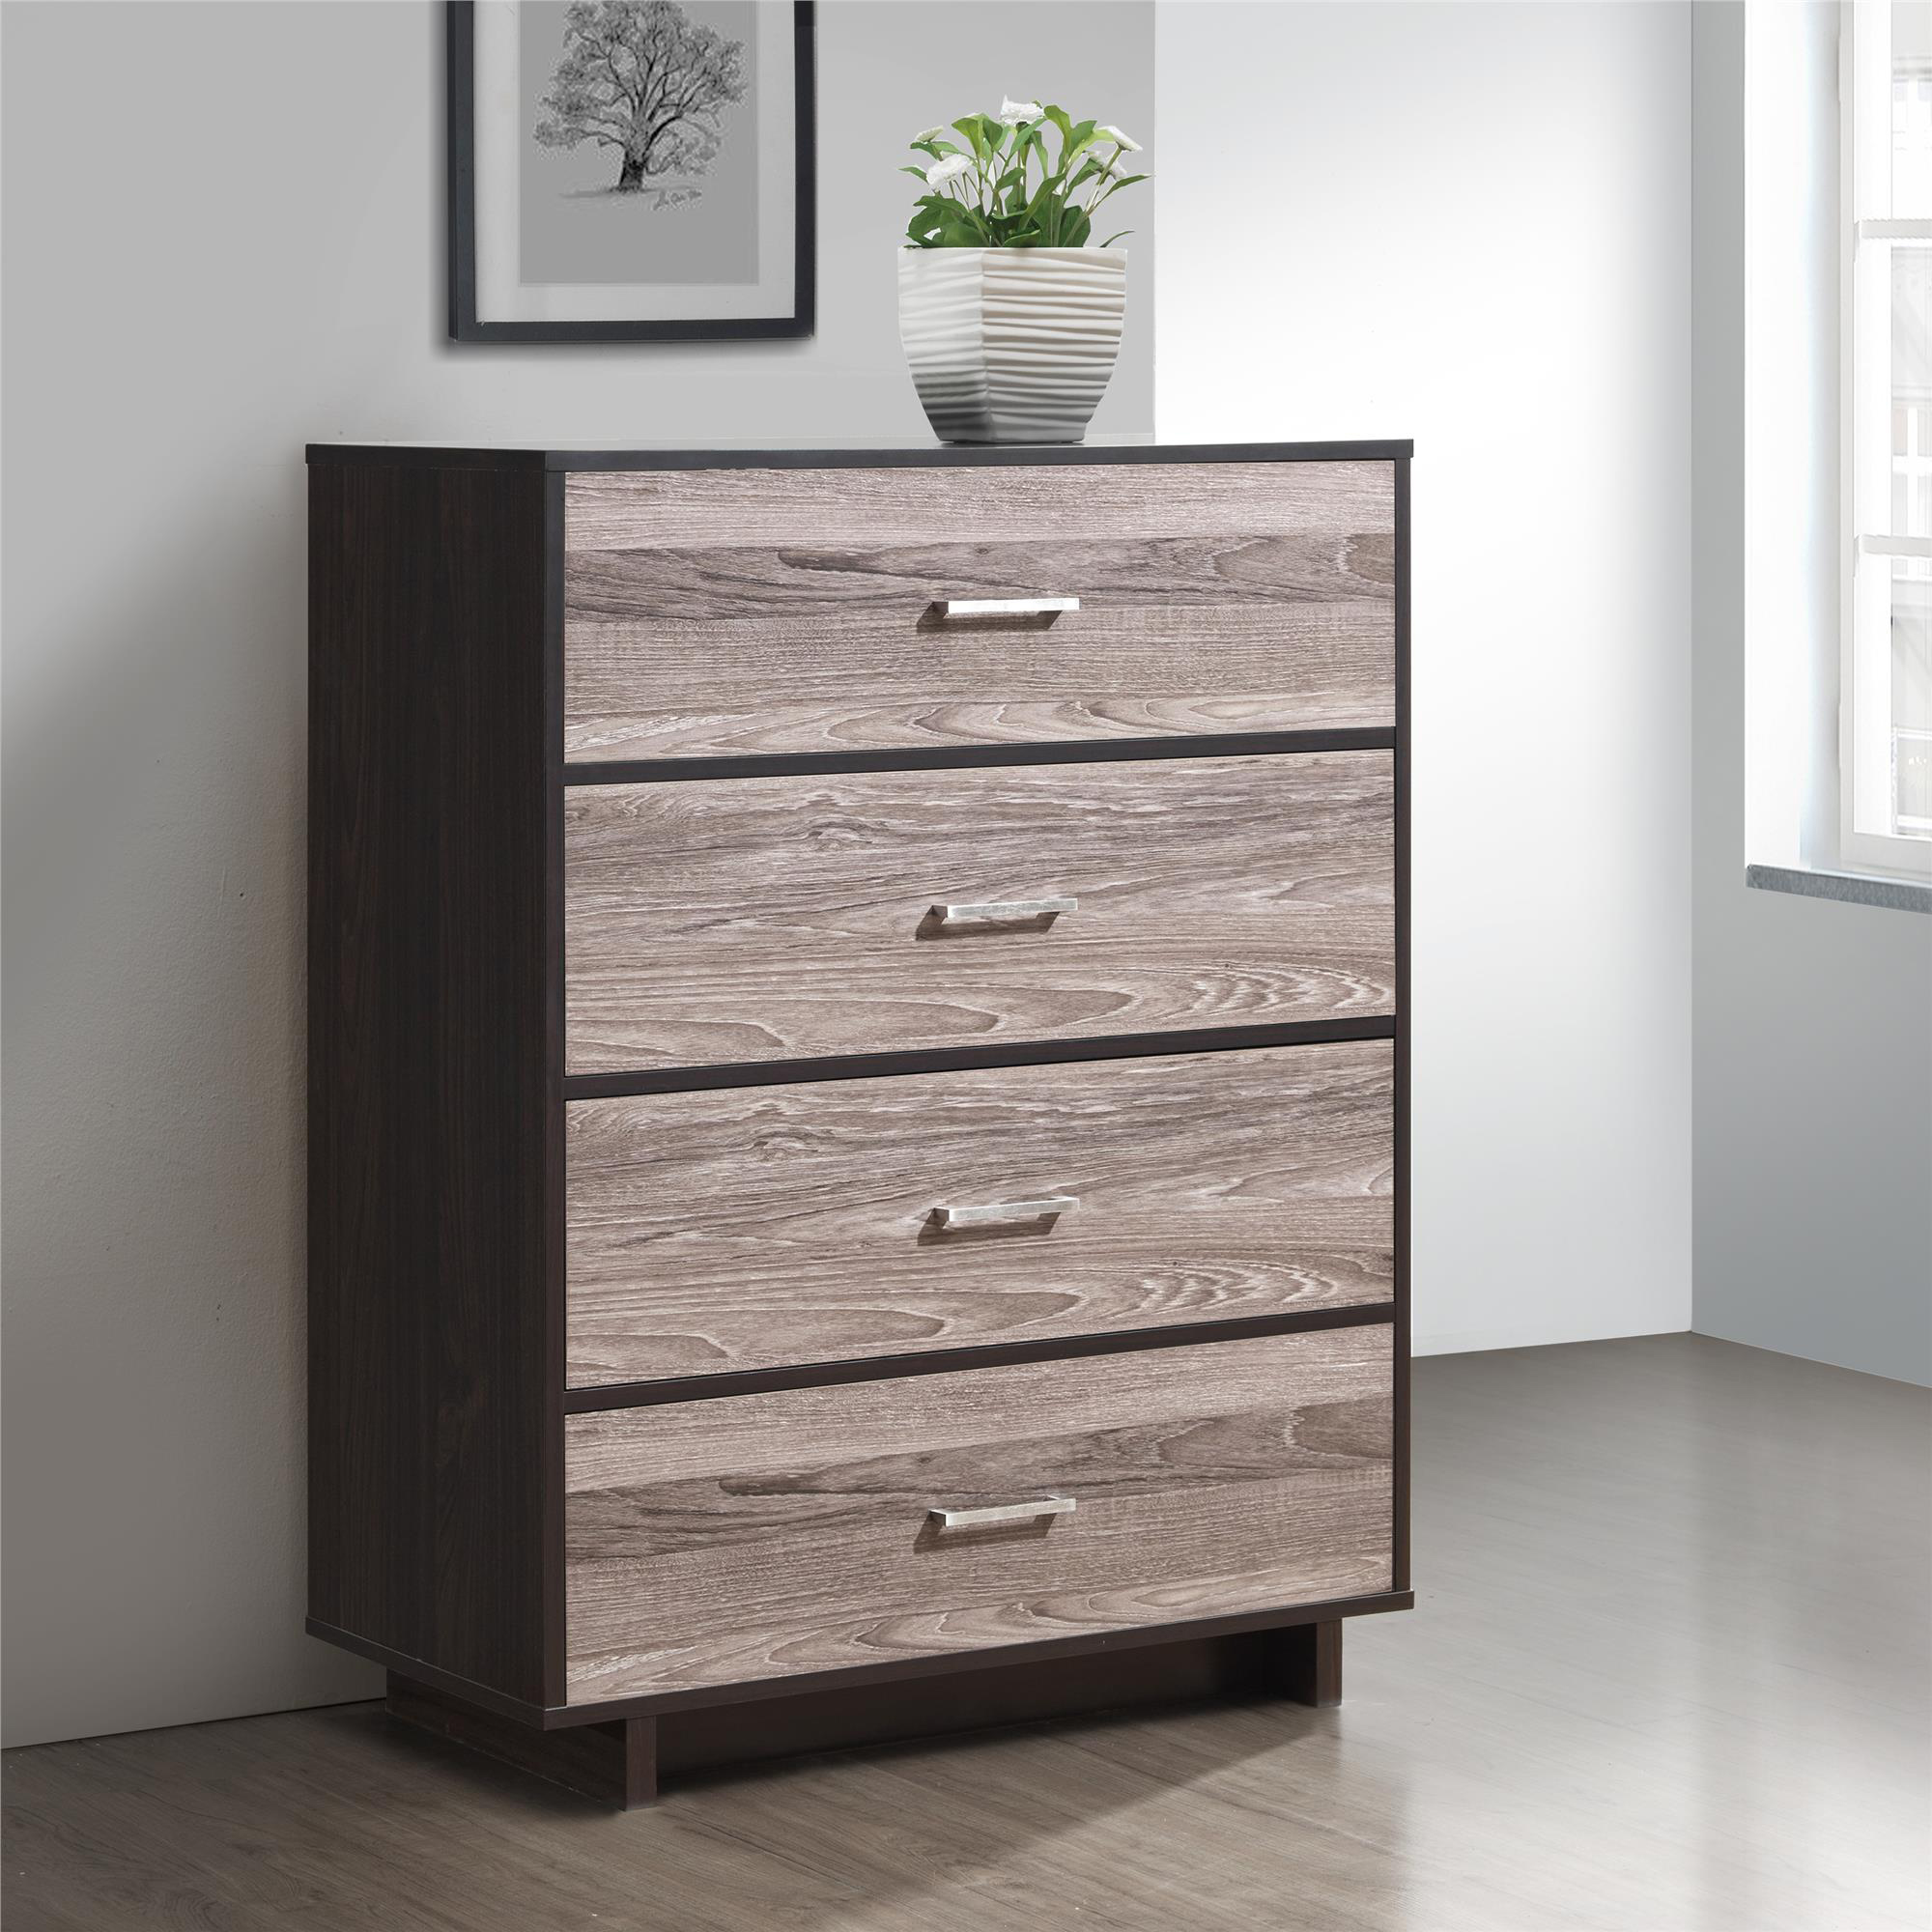 Ameriwood Home Colebrook 4 Drawer Dresser, Multiple Colors